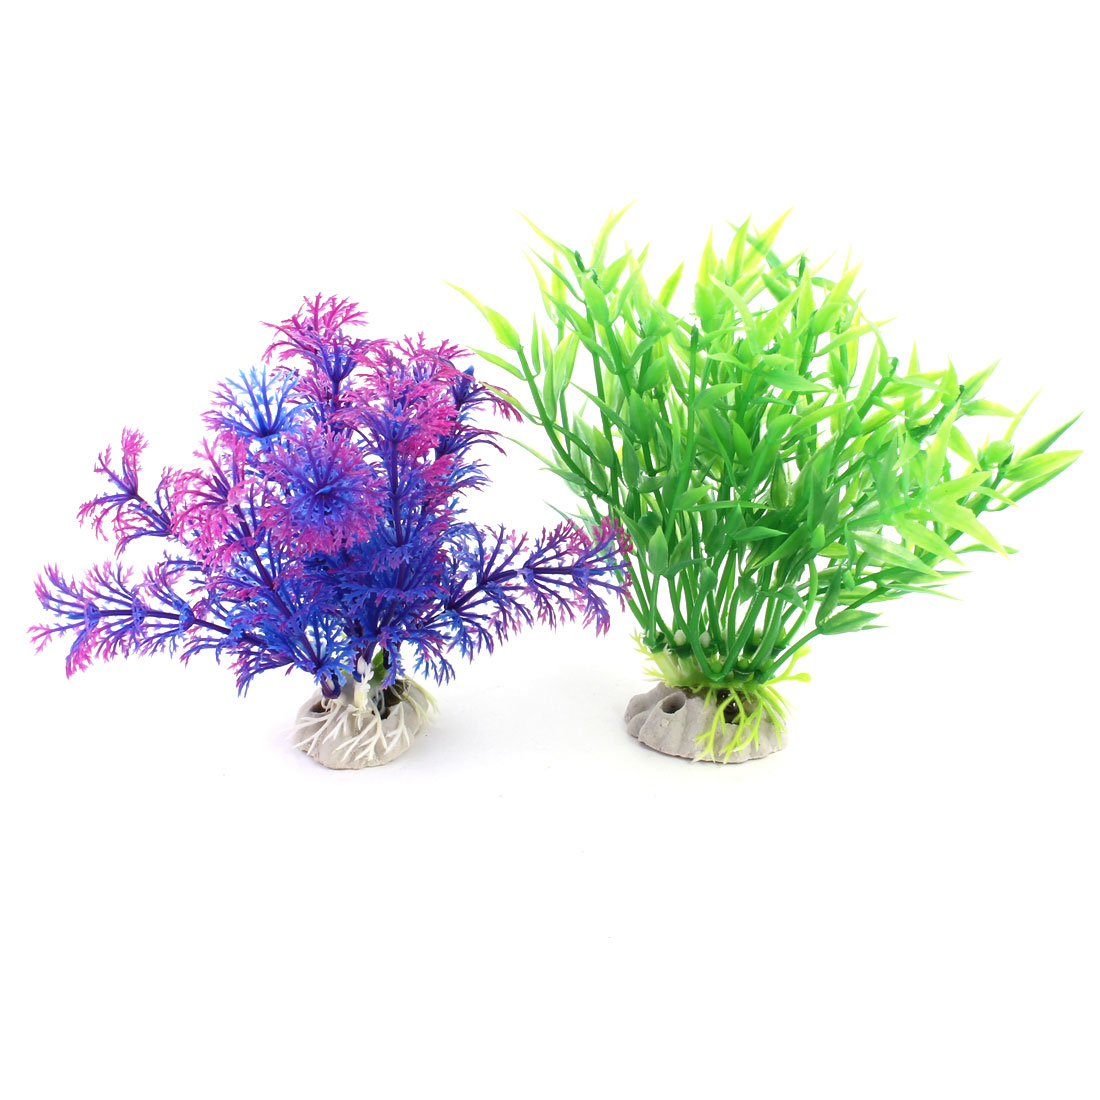 "2 Pcs 4.7"" Green Fuchsia Blue Artificial Fish Tank Plant Decor w Ceramic Base"